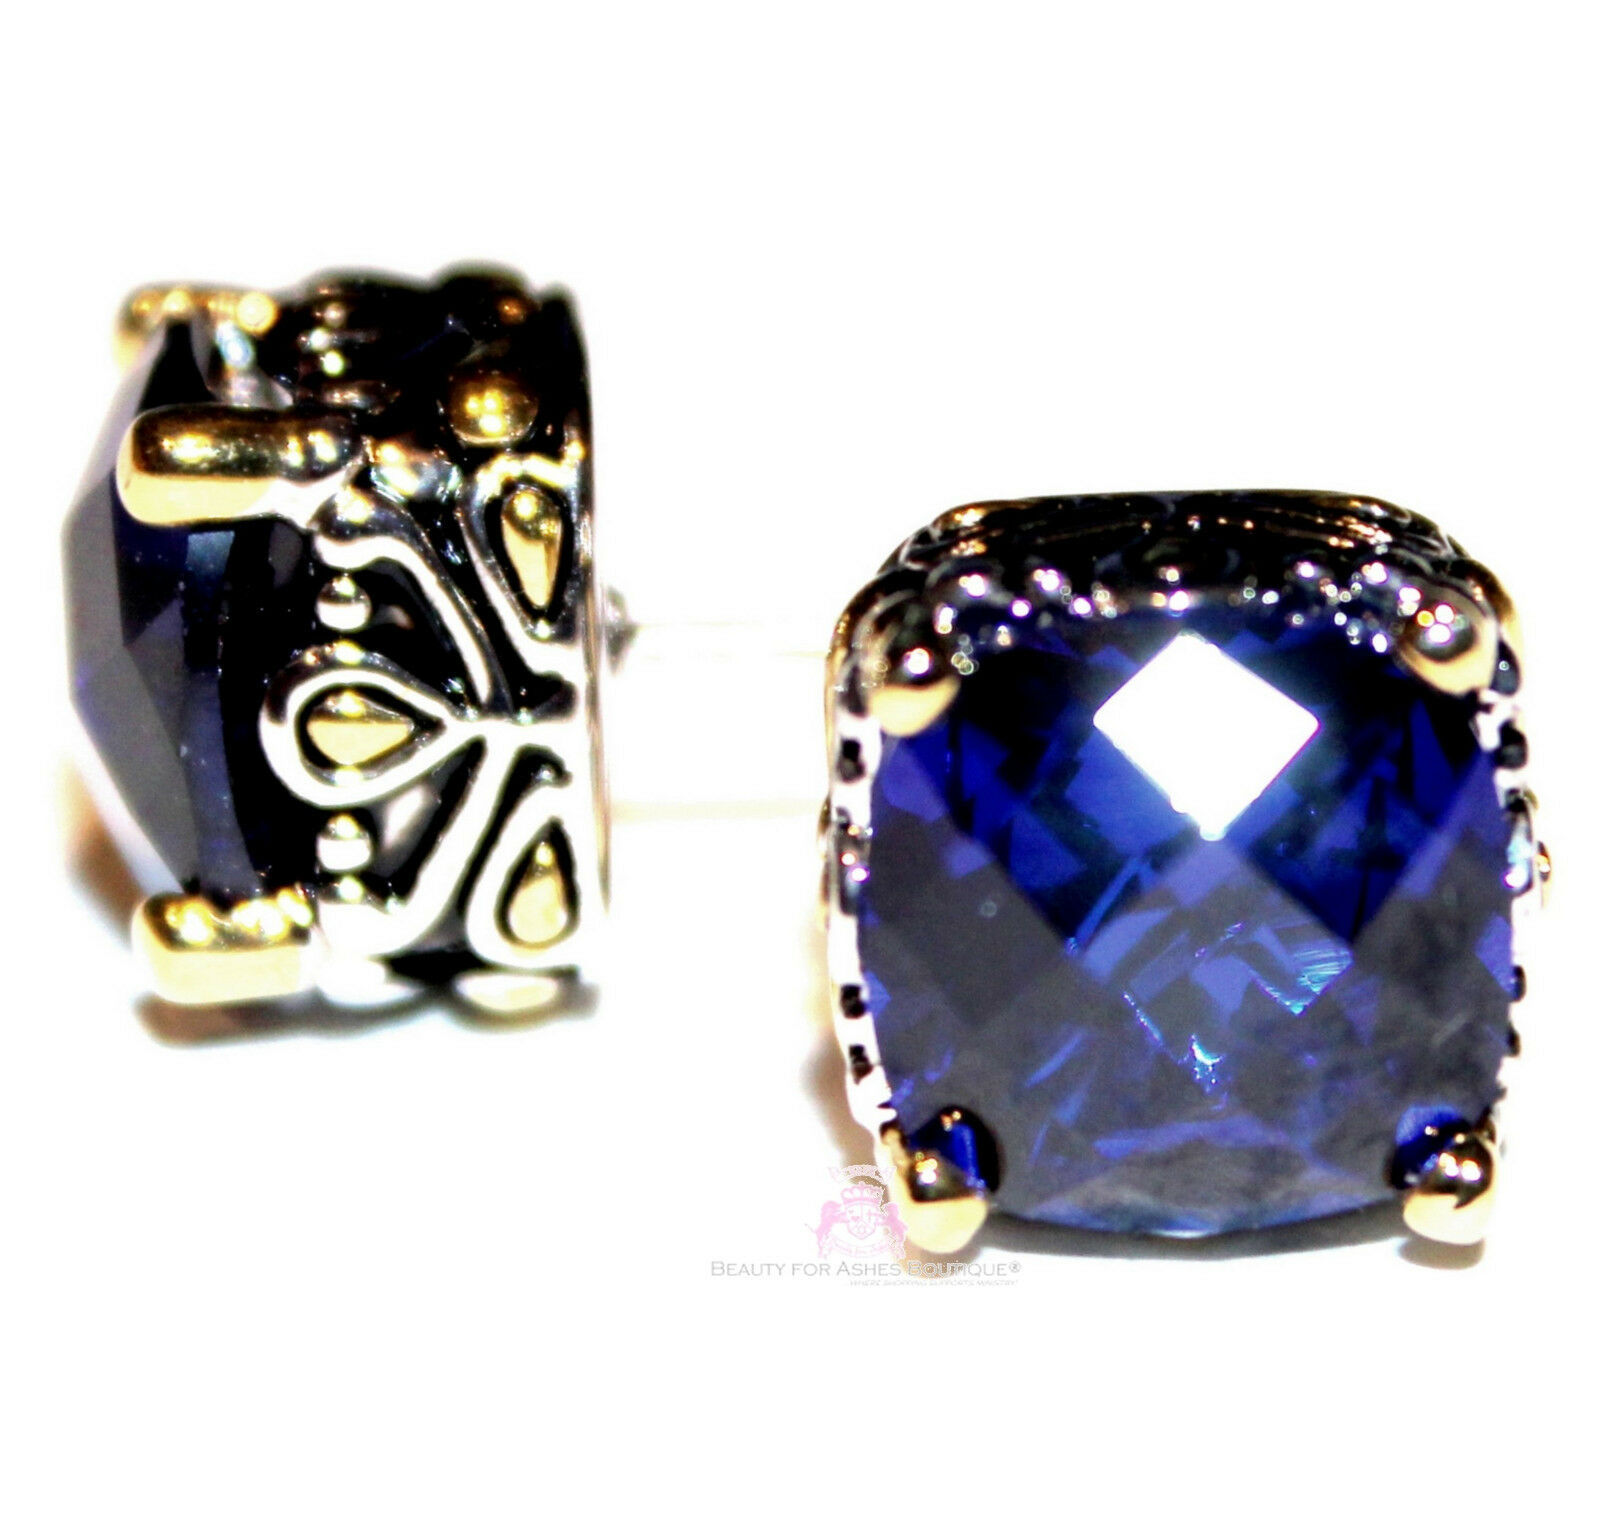 Primary image for 10mm Throne Room Checker Cut Cubic Zirconia Dark Sapphire Blue Cz Post Earrings